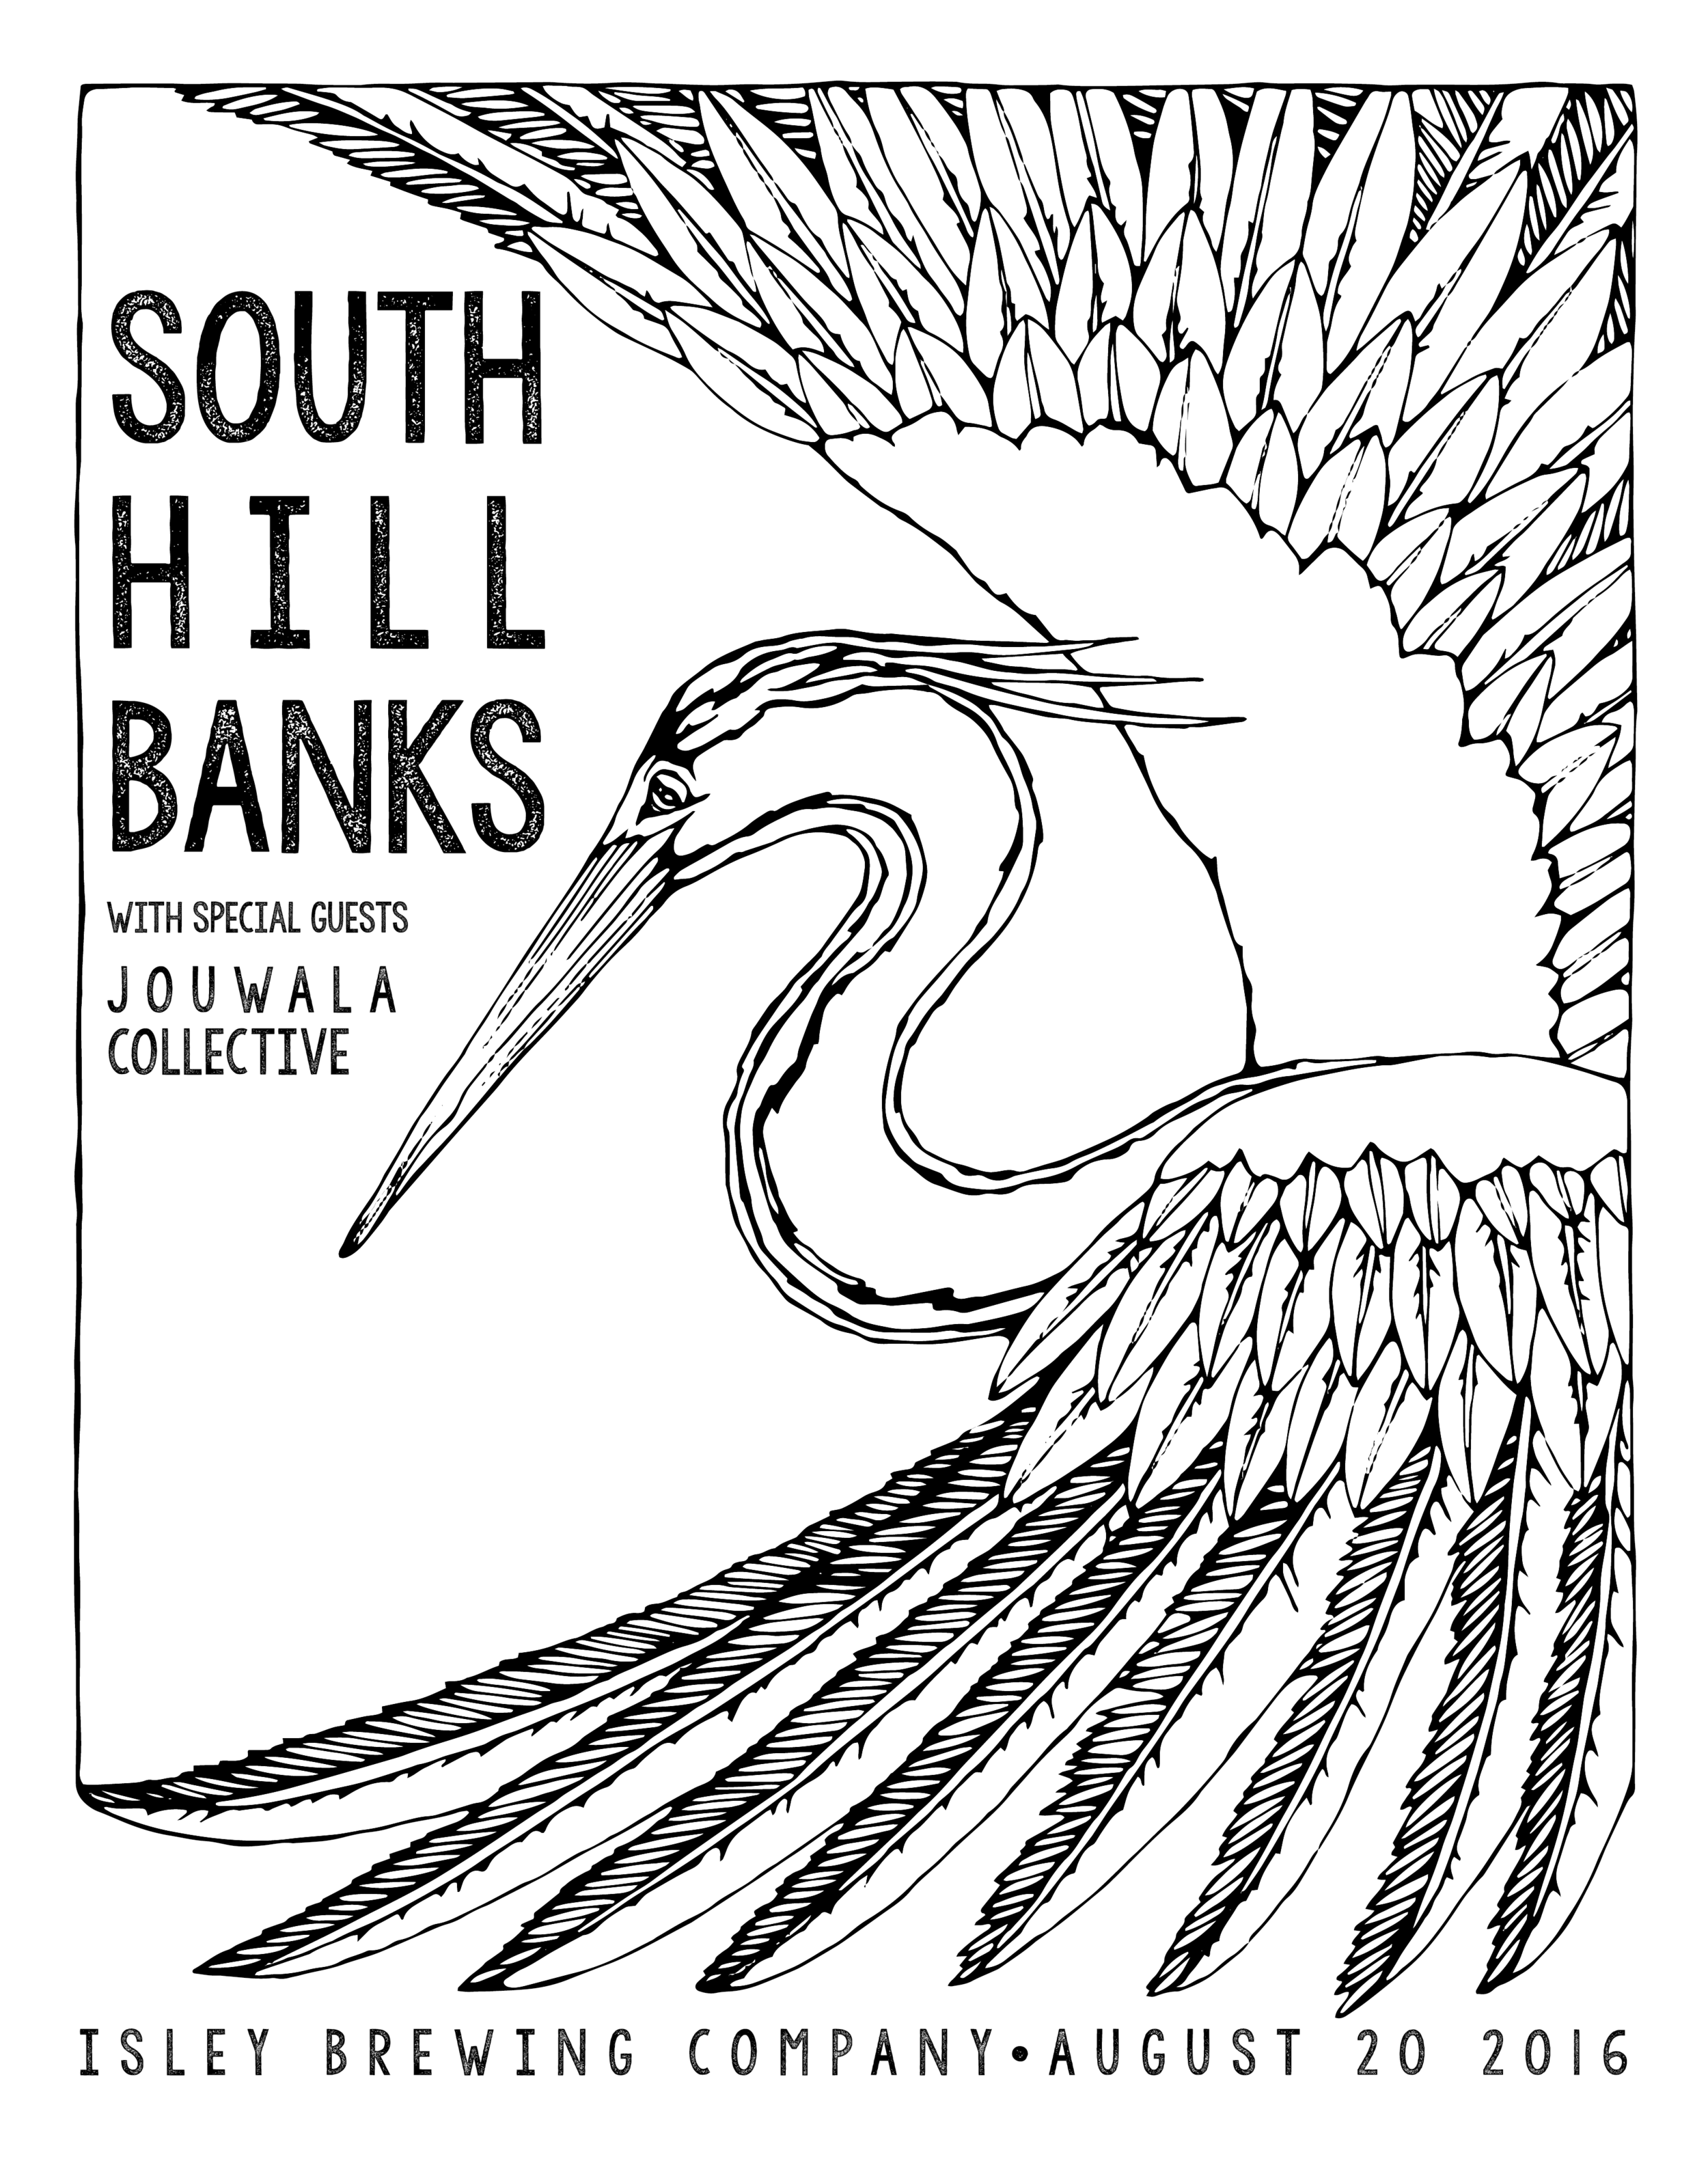 SouthHillBanksPOSTER.png